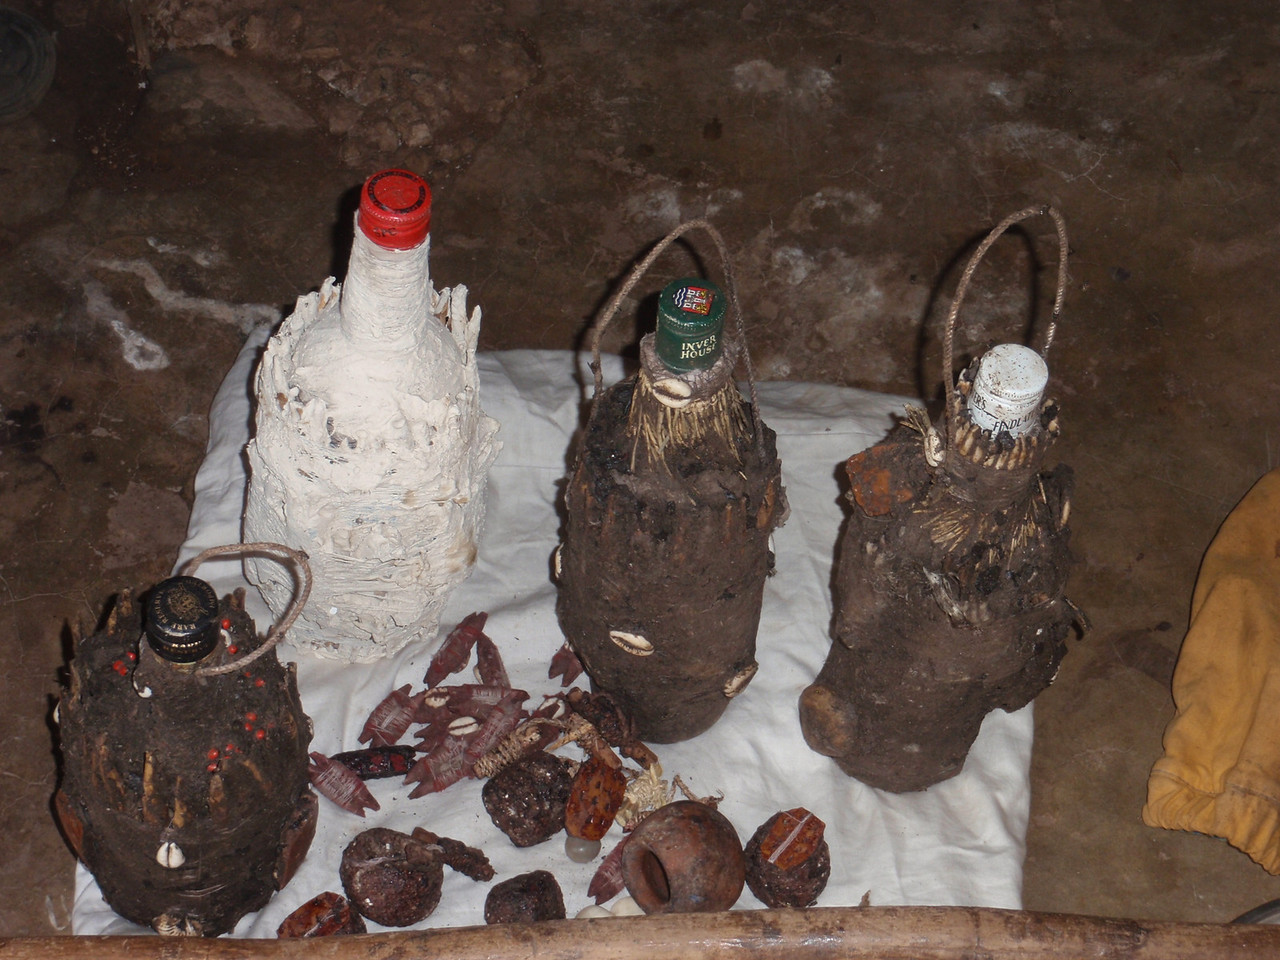 136_Abomey-Calavi Fetish Market  Raw Materials for Intervention